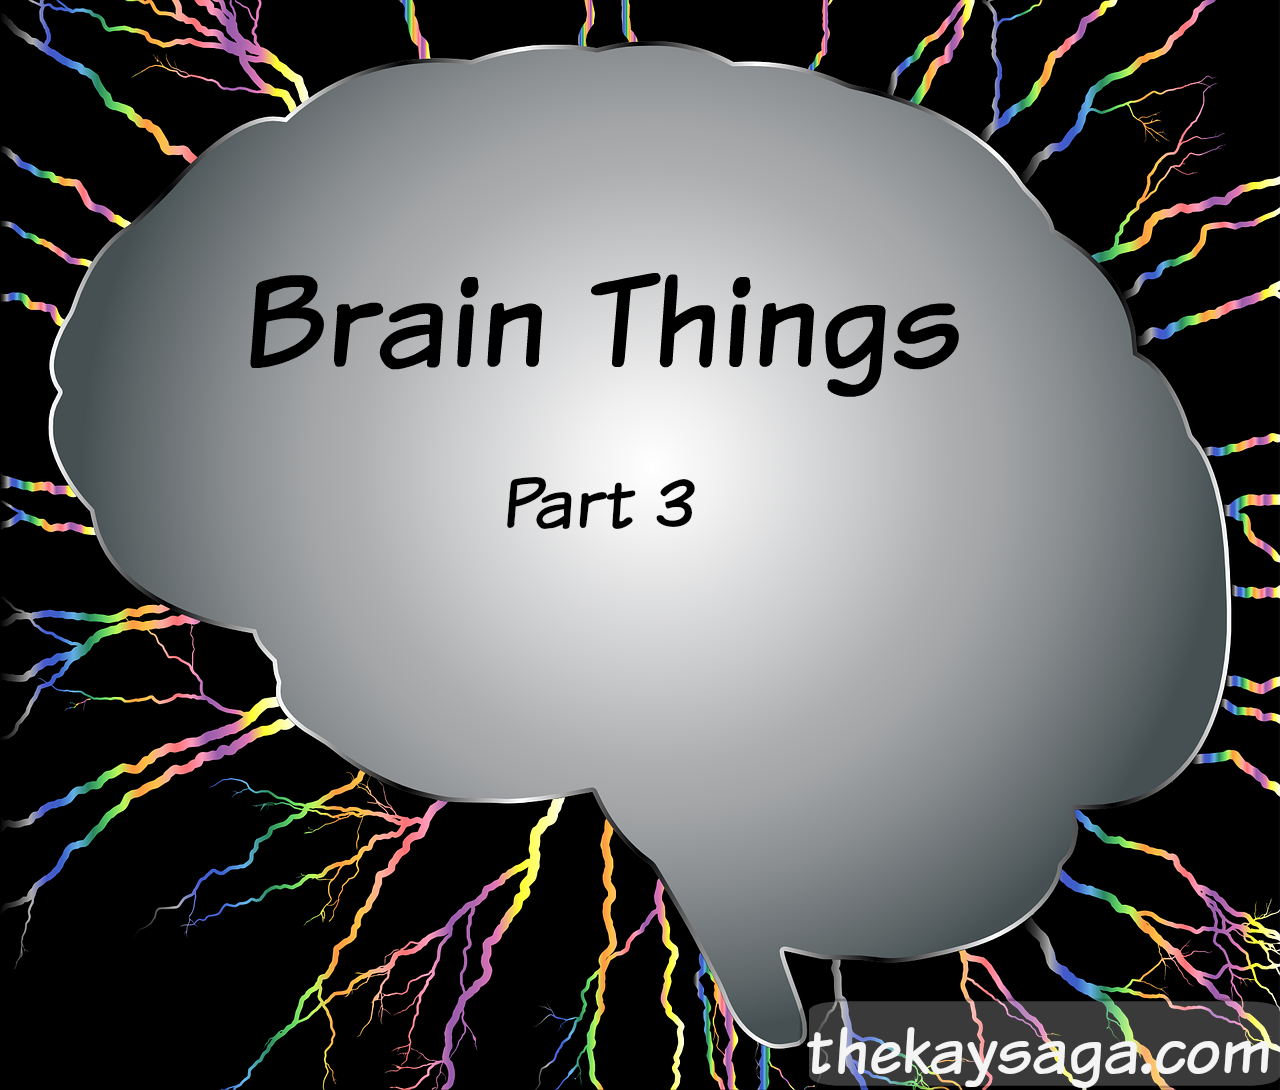 Brain Things Part 3 (Chiari Malformation)